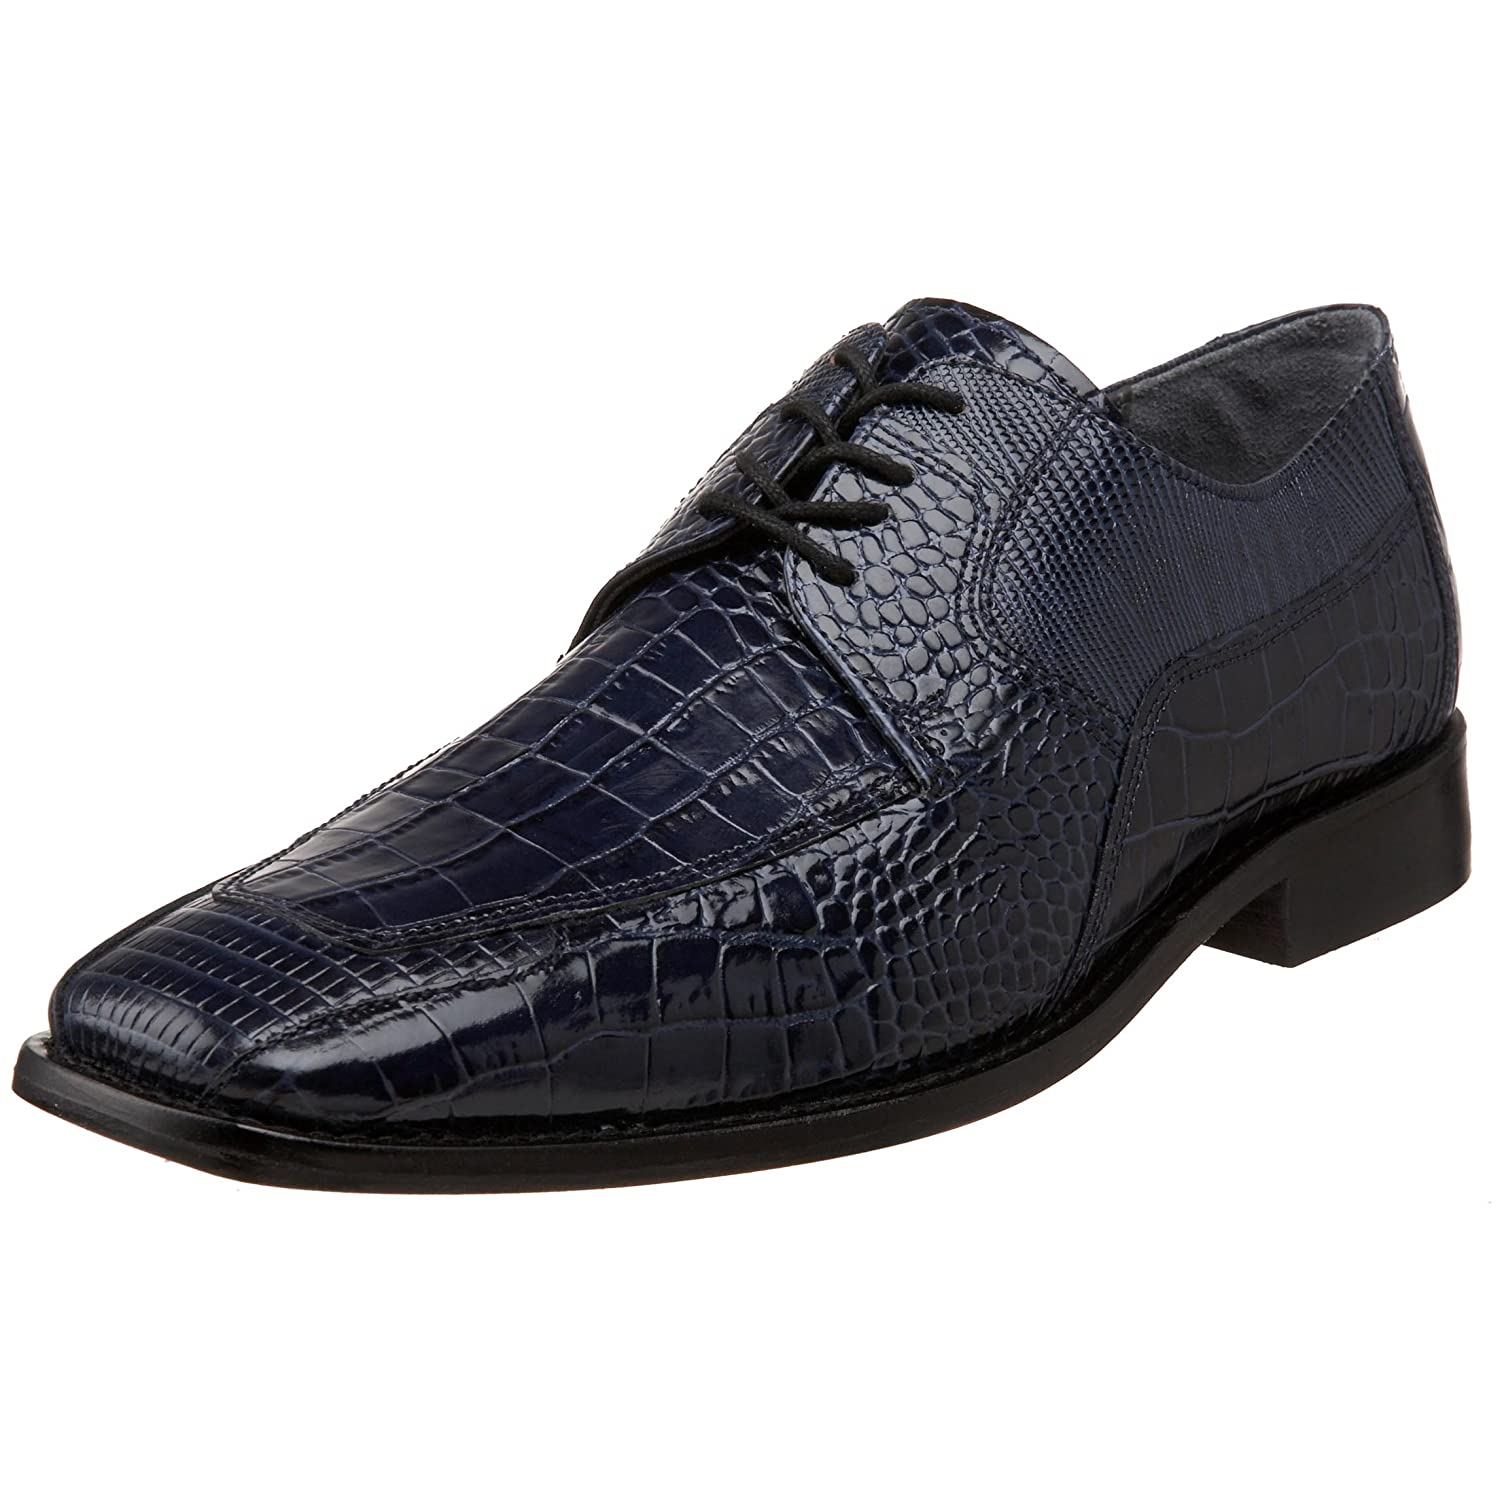 Stacy Adams Mens Delray Oxford